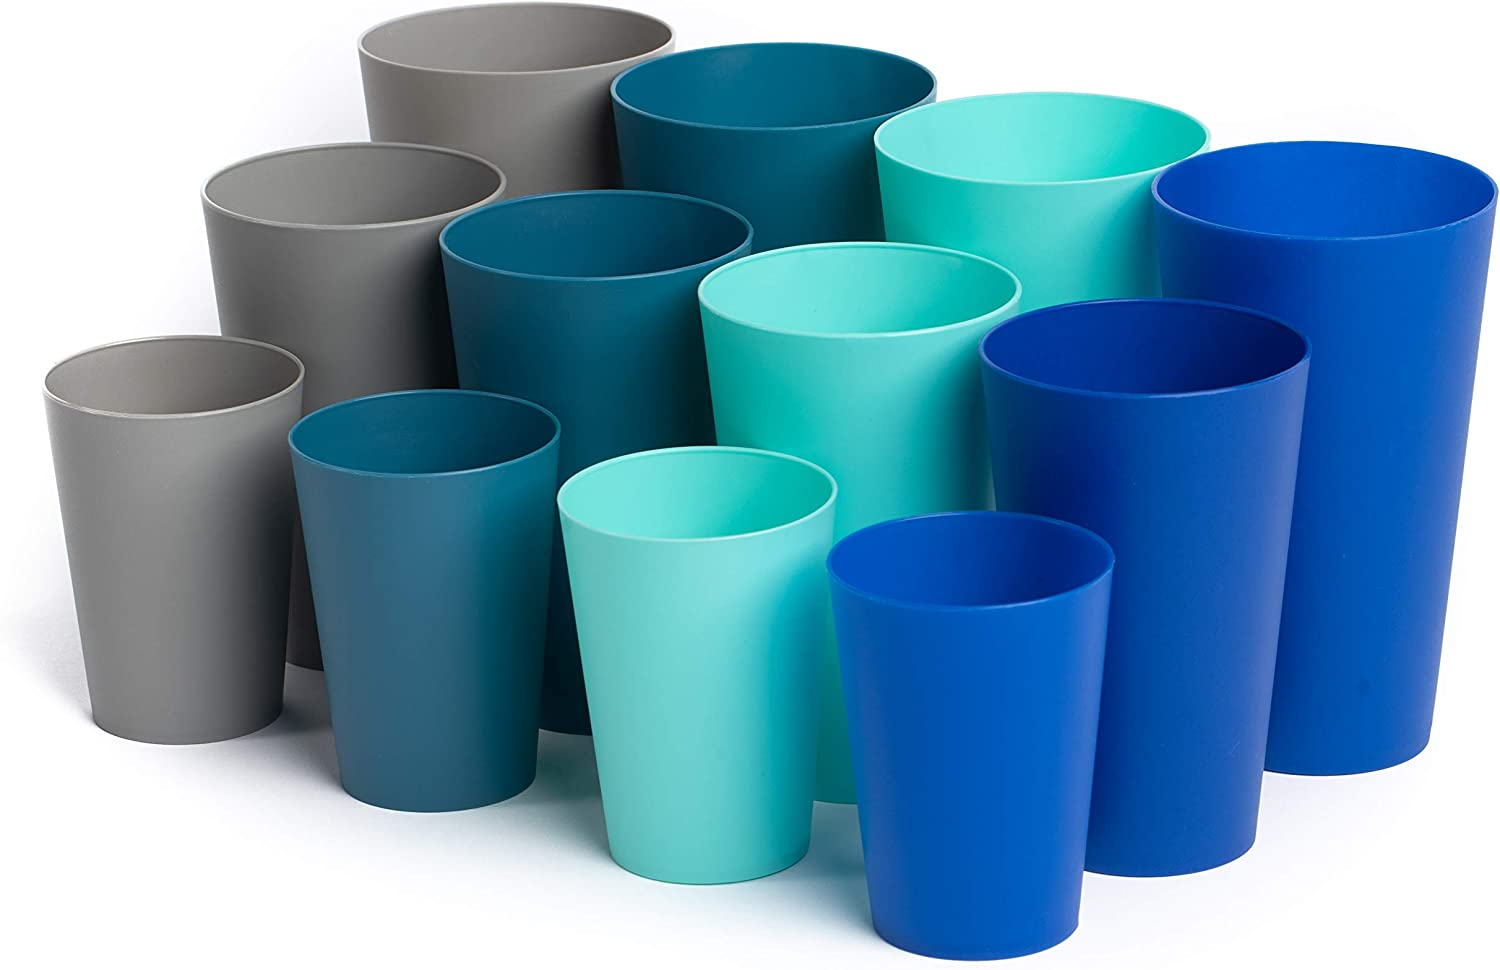 Klickpick Home Multi Size 10 Ounce 15 Ounce 20 Ounce - 12 Piece Premium Quality Plastic Beverage Tumblers Reusable Cups Dishwasher Safe BPAFree In 4 Coastal Colours